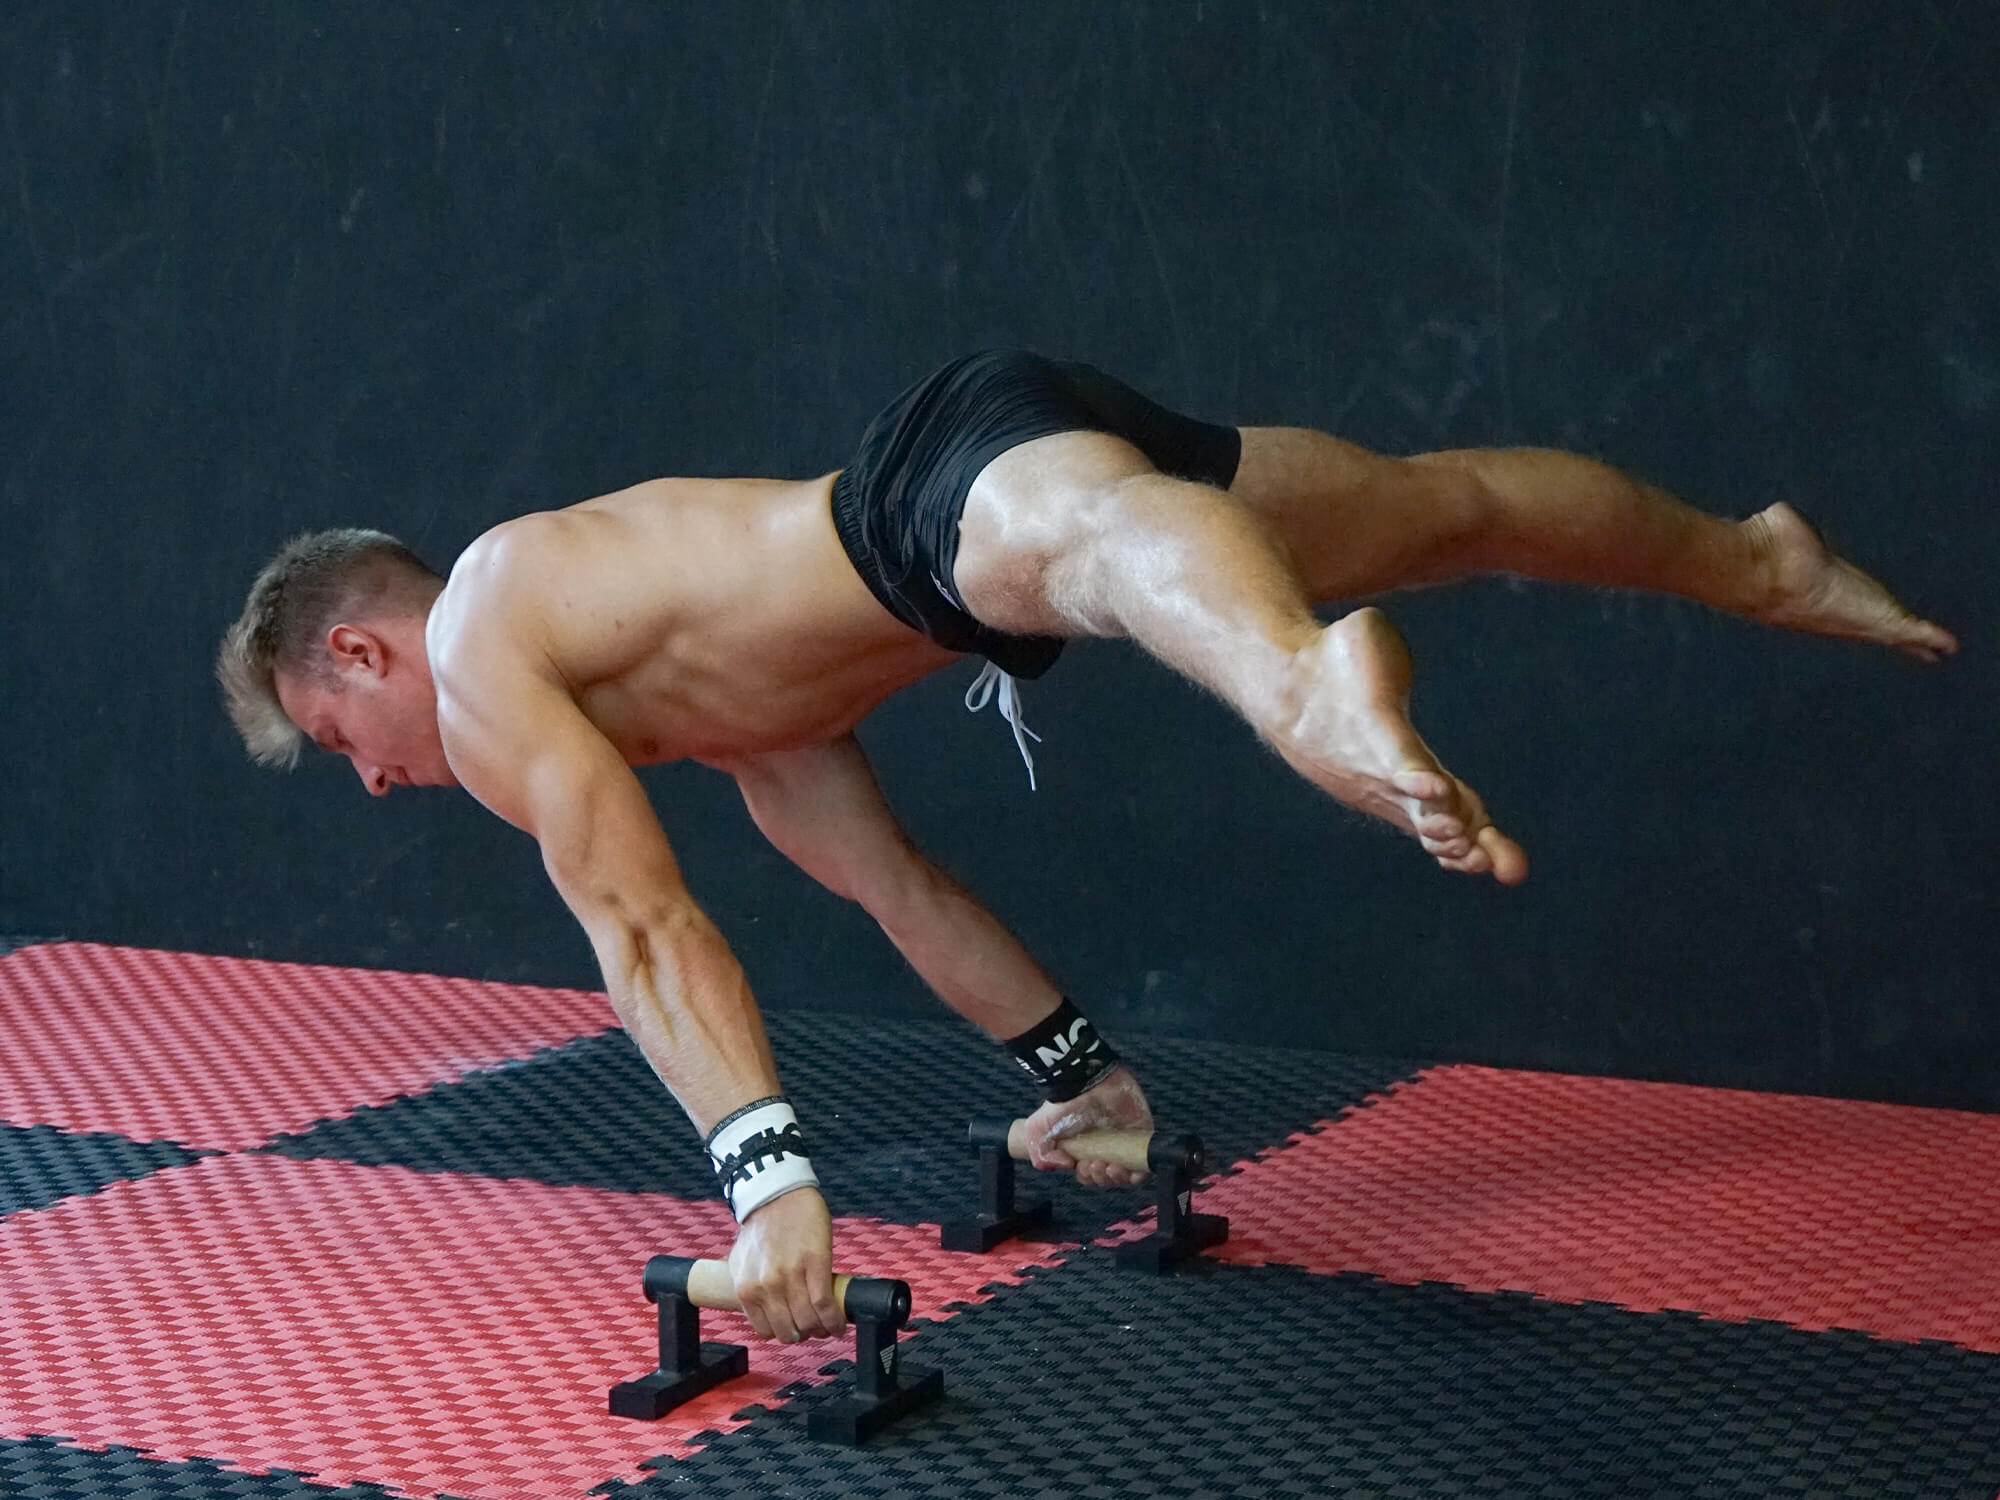 athlete holding a straddle planche on parallettes